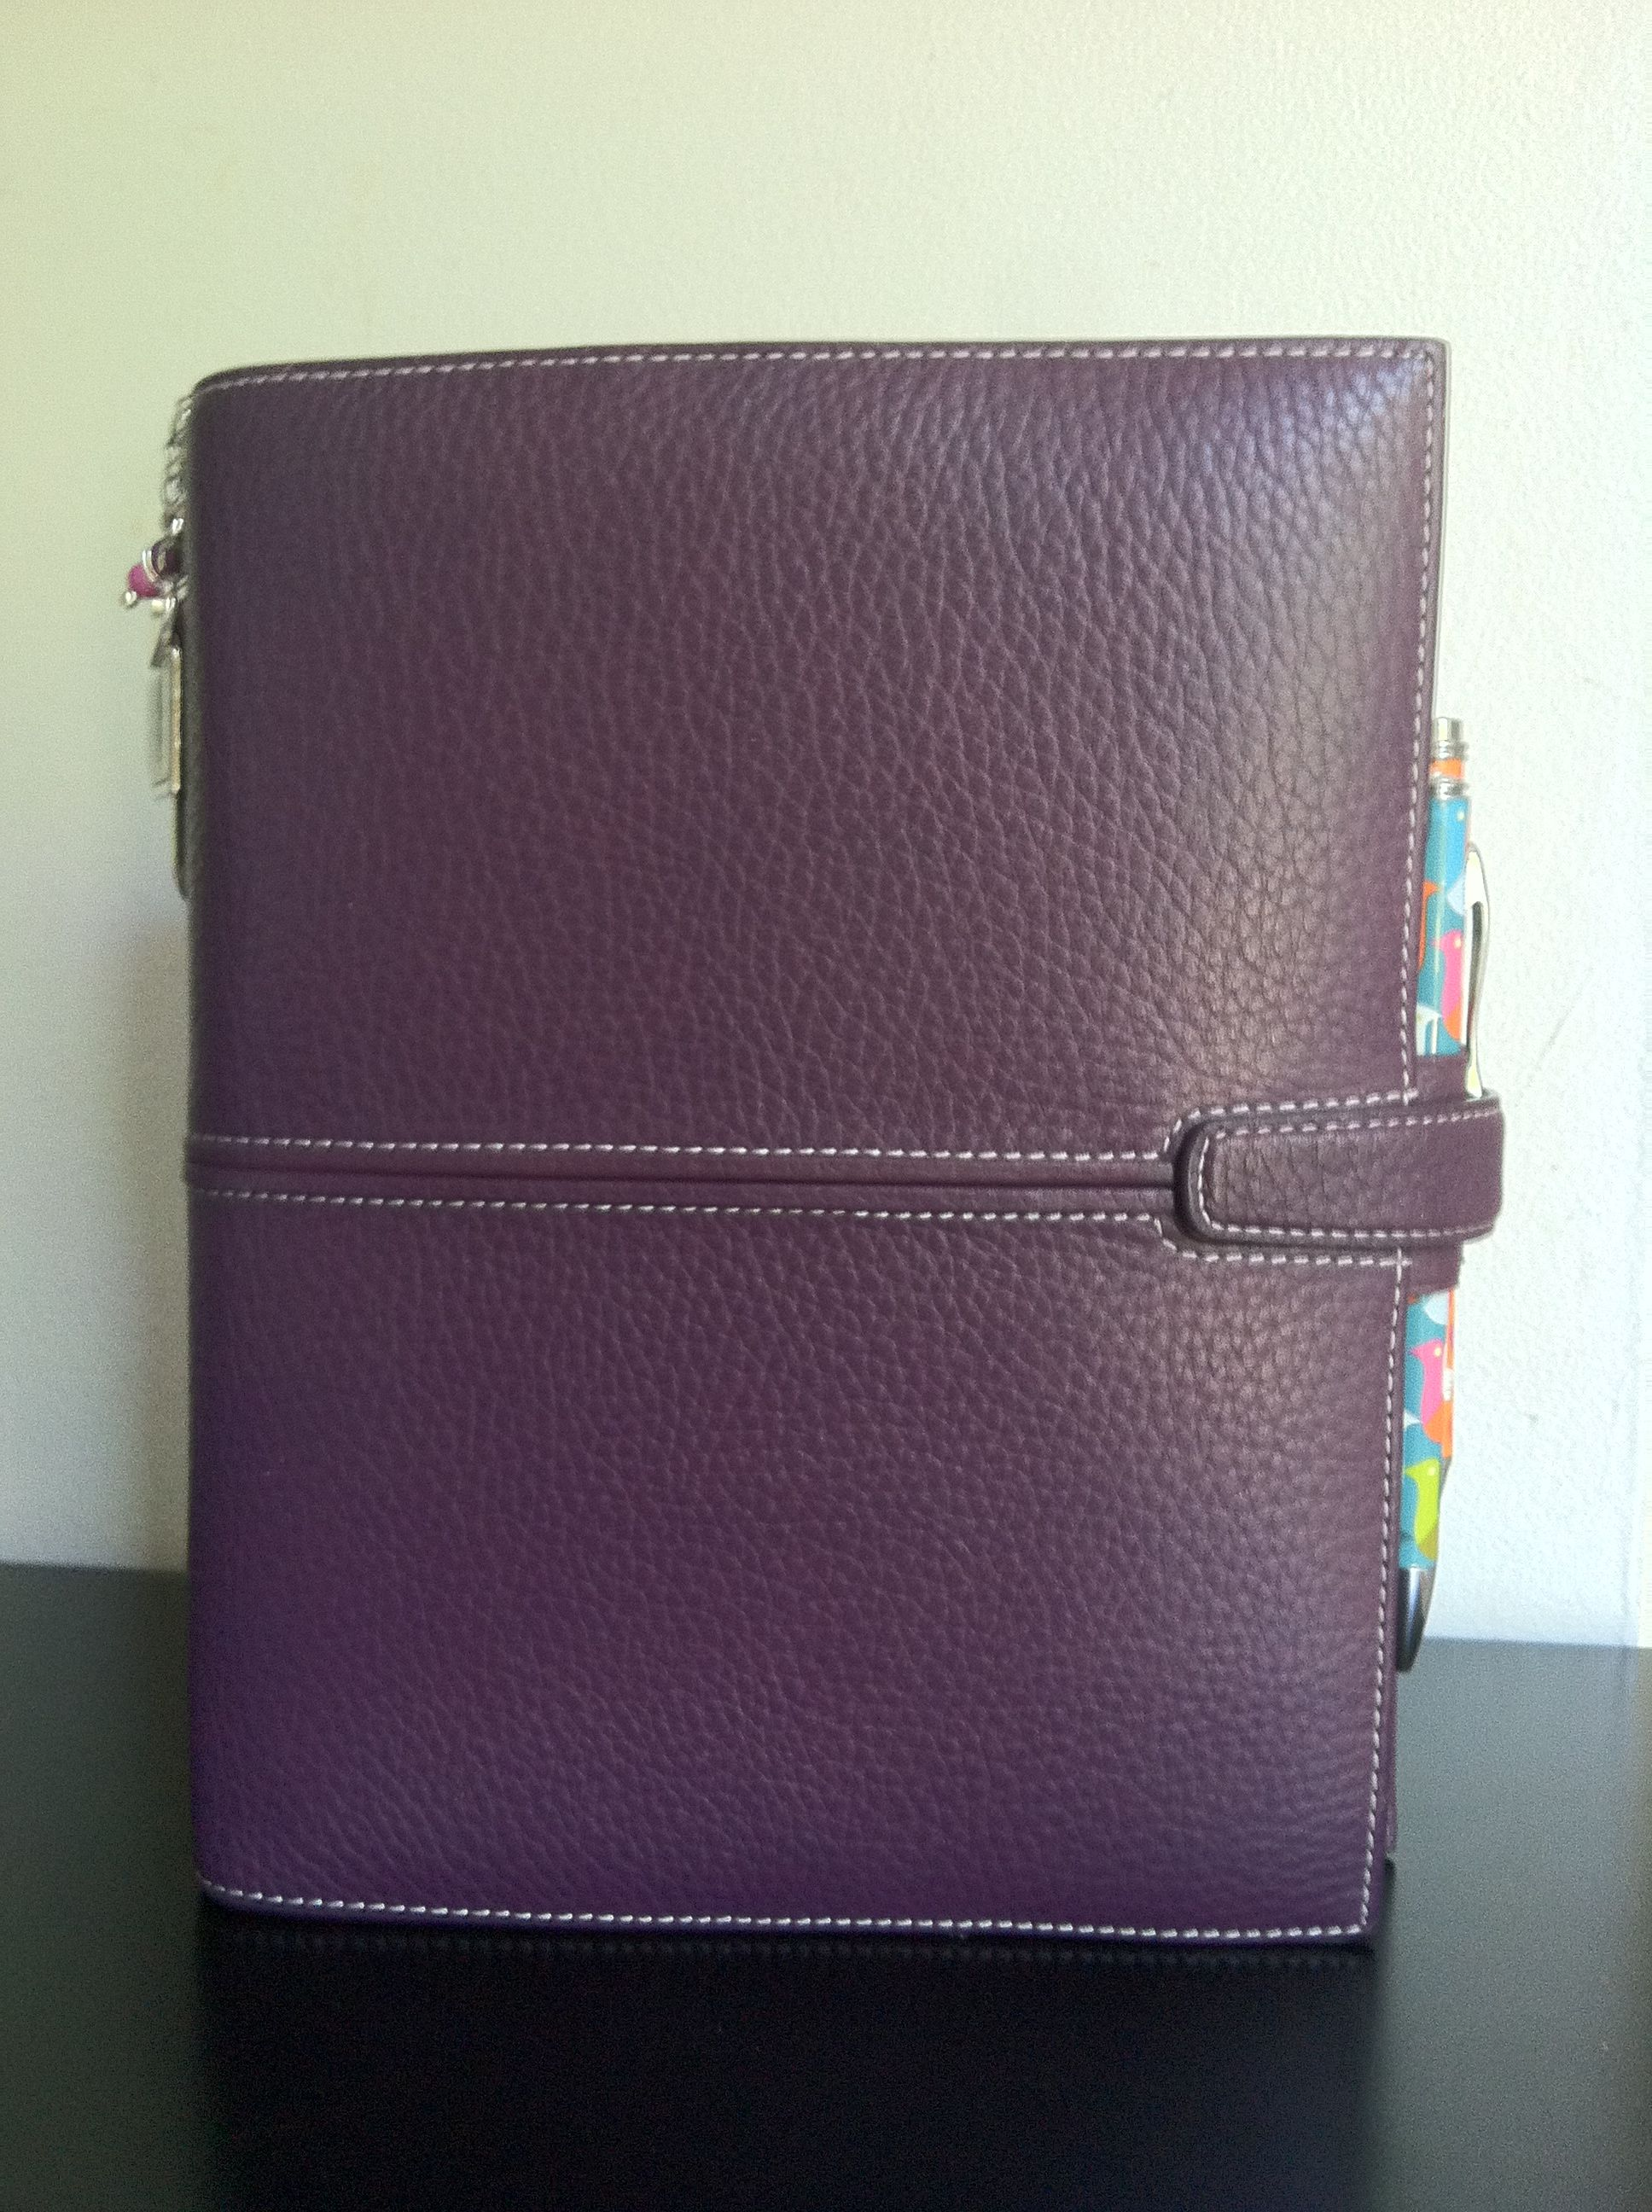 Challenge Day 1: planner cover - Filofax A5 Finchley, imperial purple